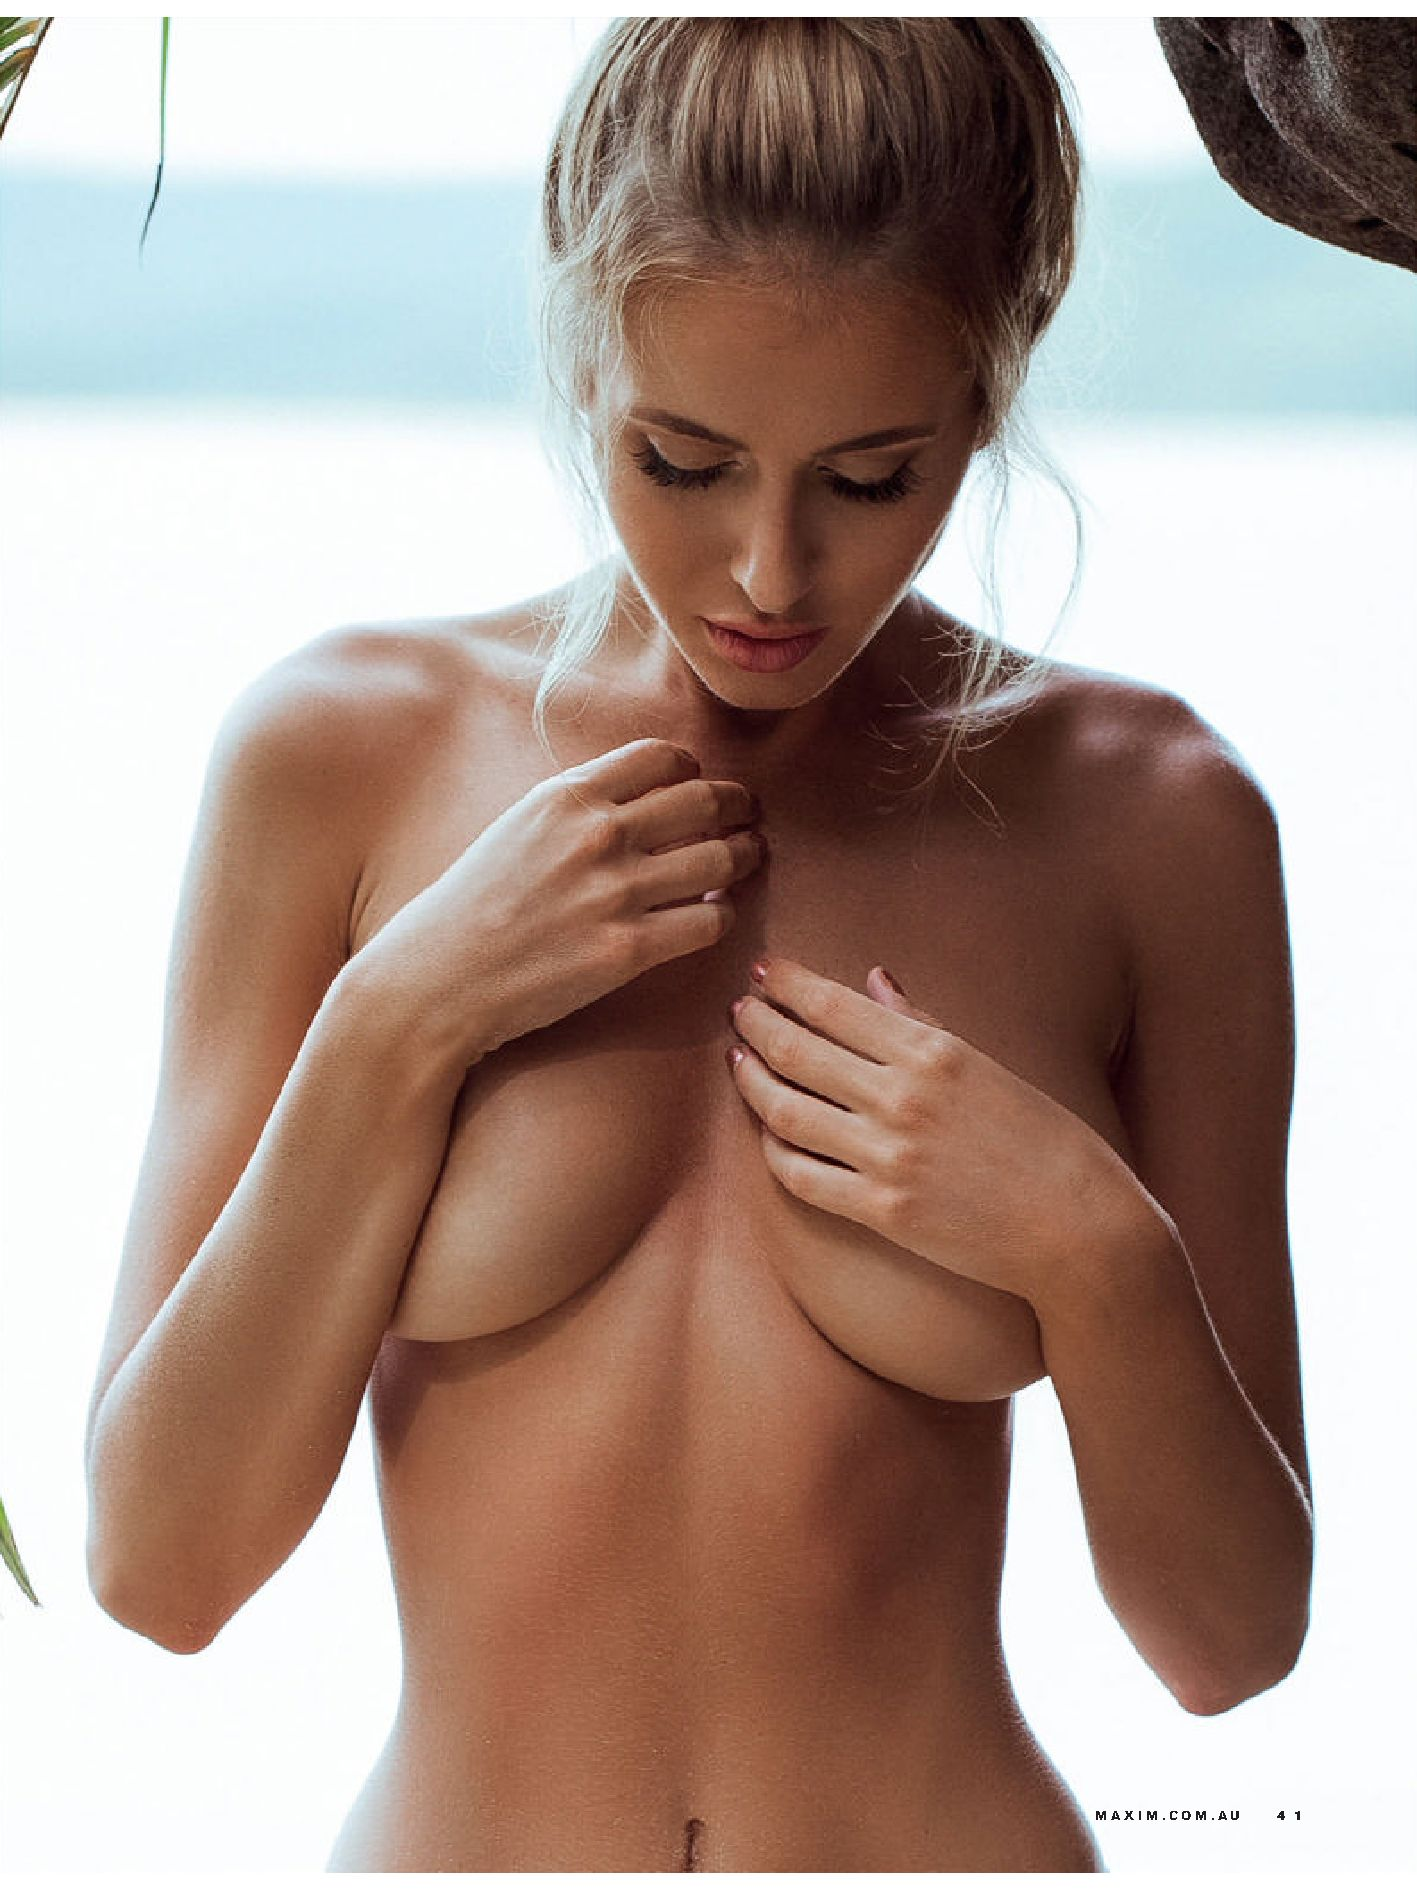 Renee somerfield sexy topless 9 photos new picture